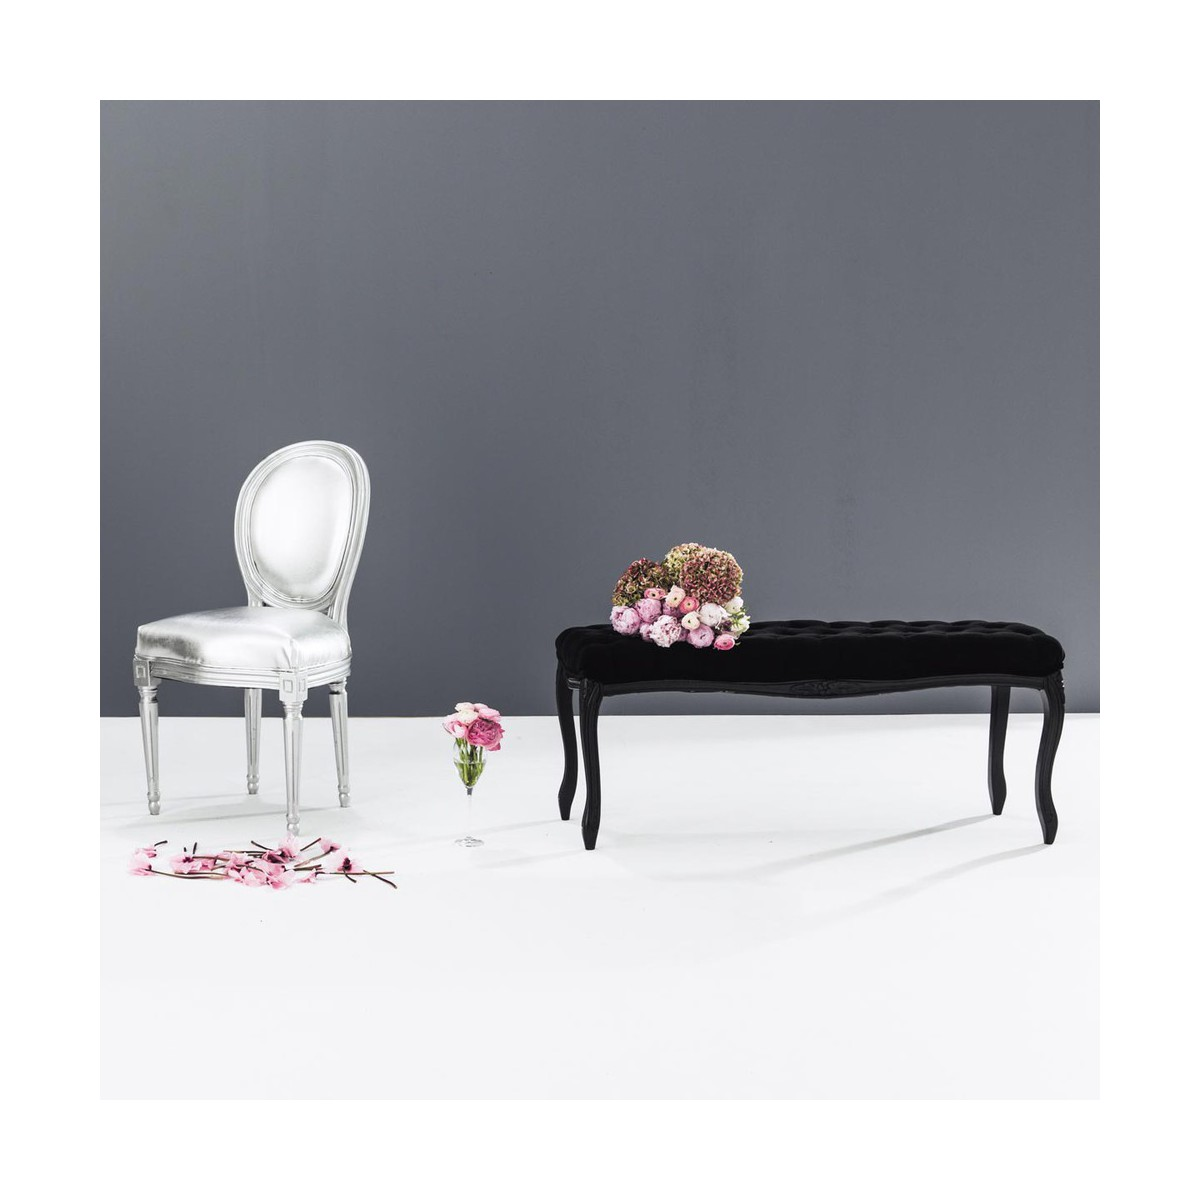 chaise mdaillon maison du monde chaise mdaillon uelizau en with chaise mdaillon maison du monde. Black Bedroom Furniture Sets. Home Design Ideas